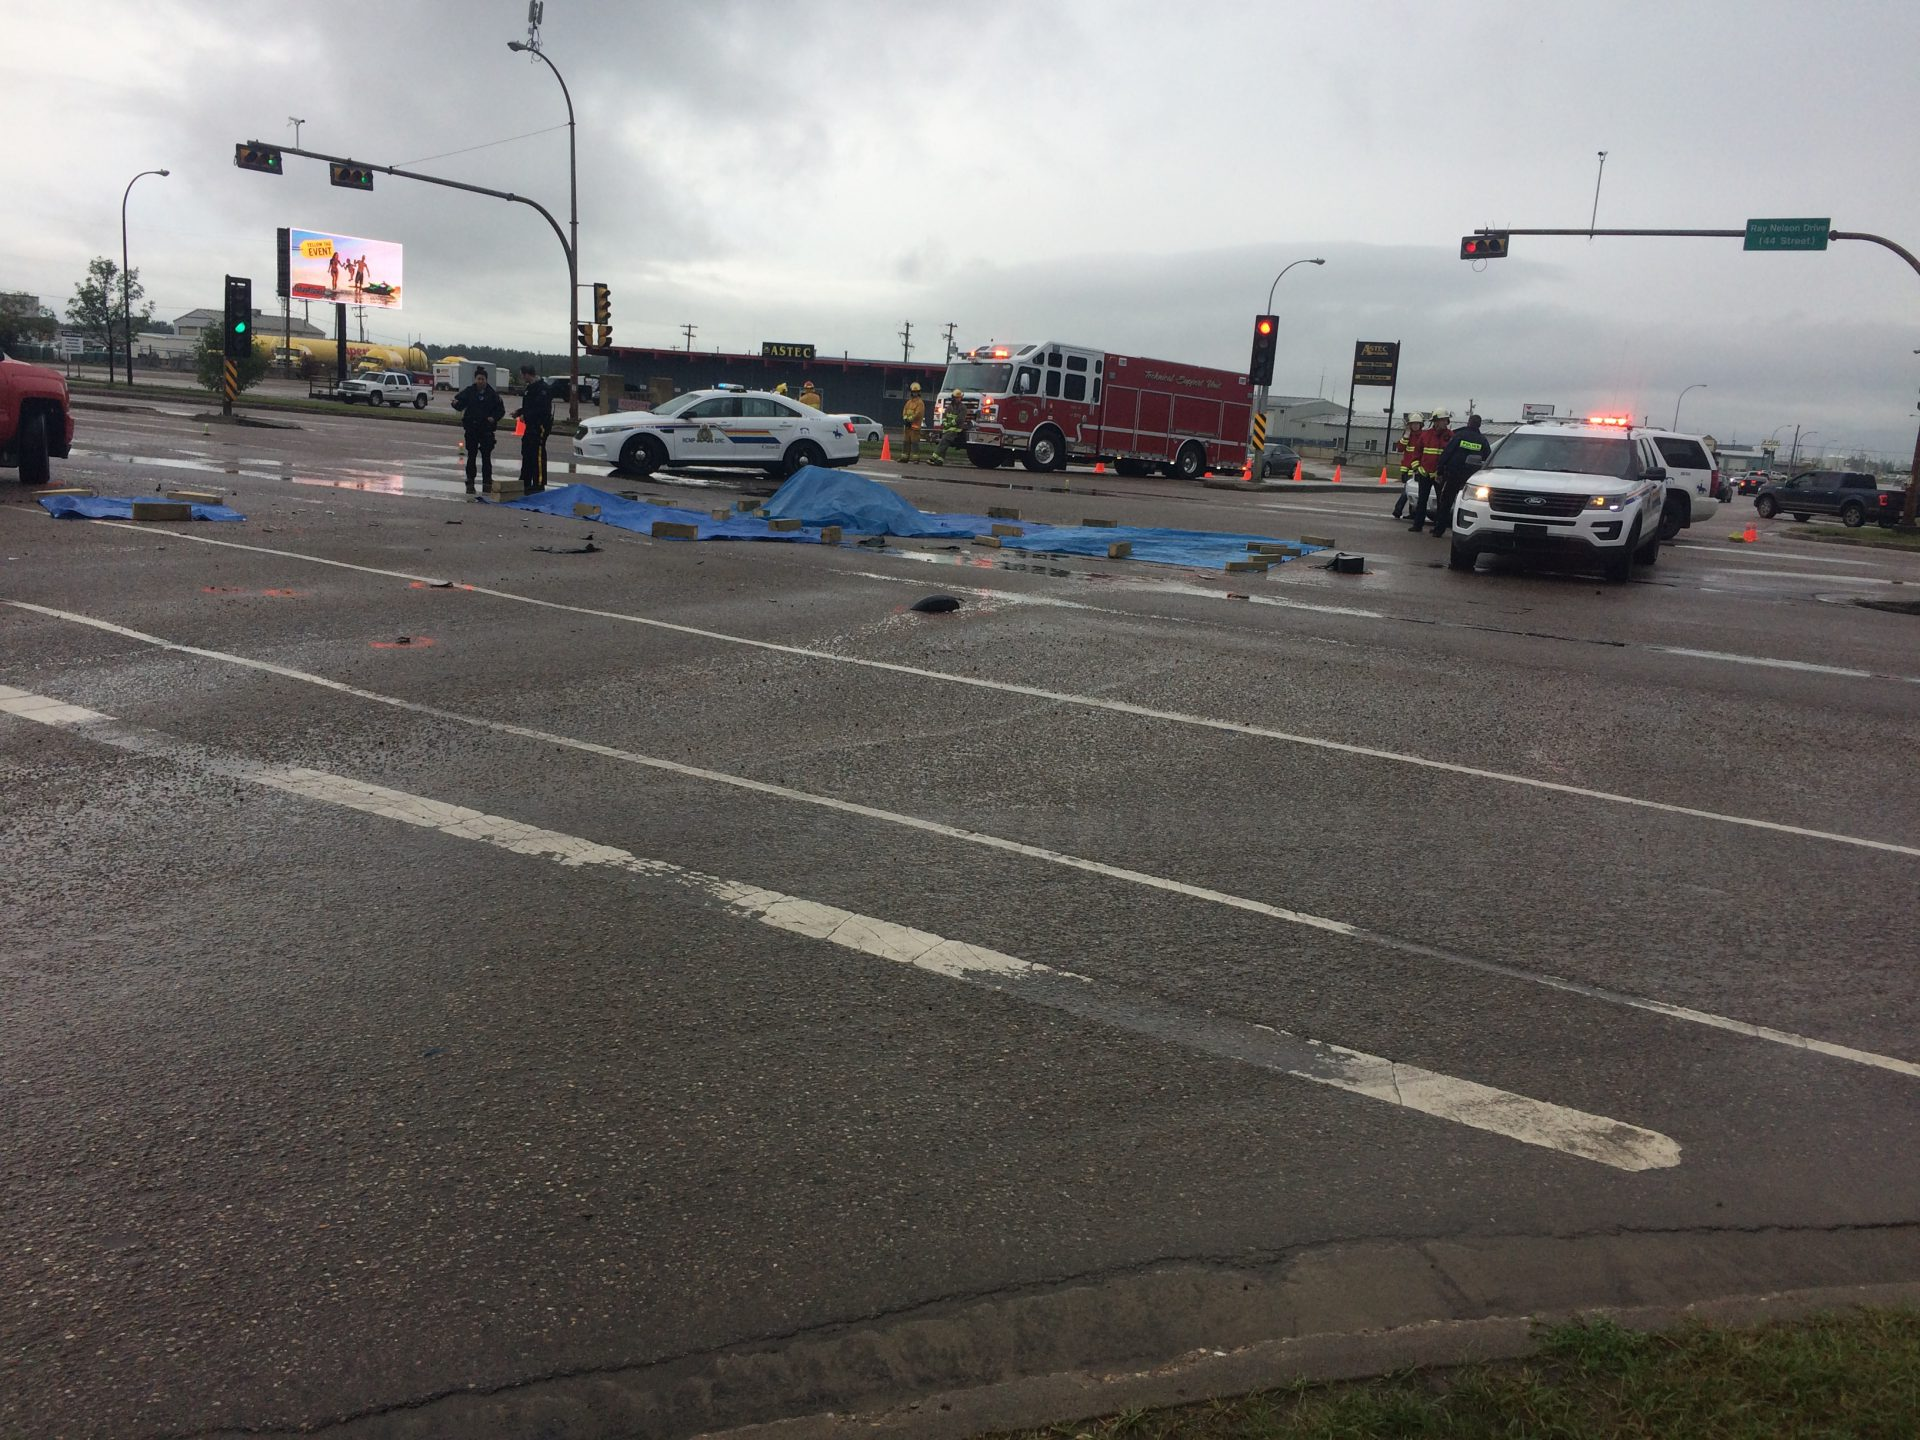 UPDATE: RCMP confirm fatality at Highway 16 accident - My